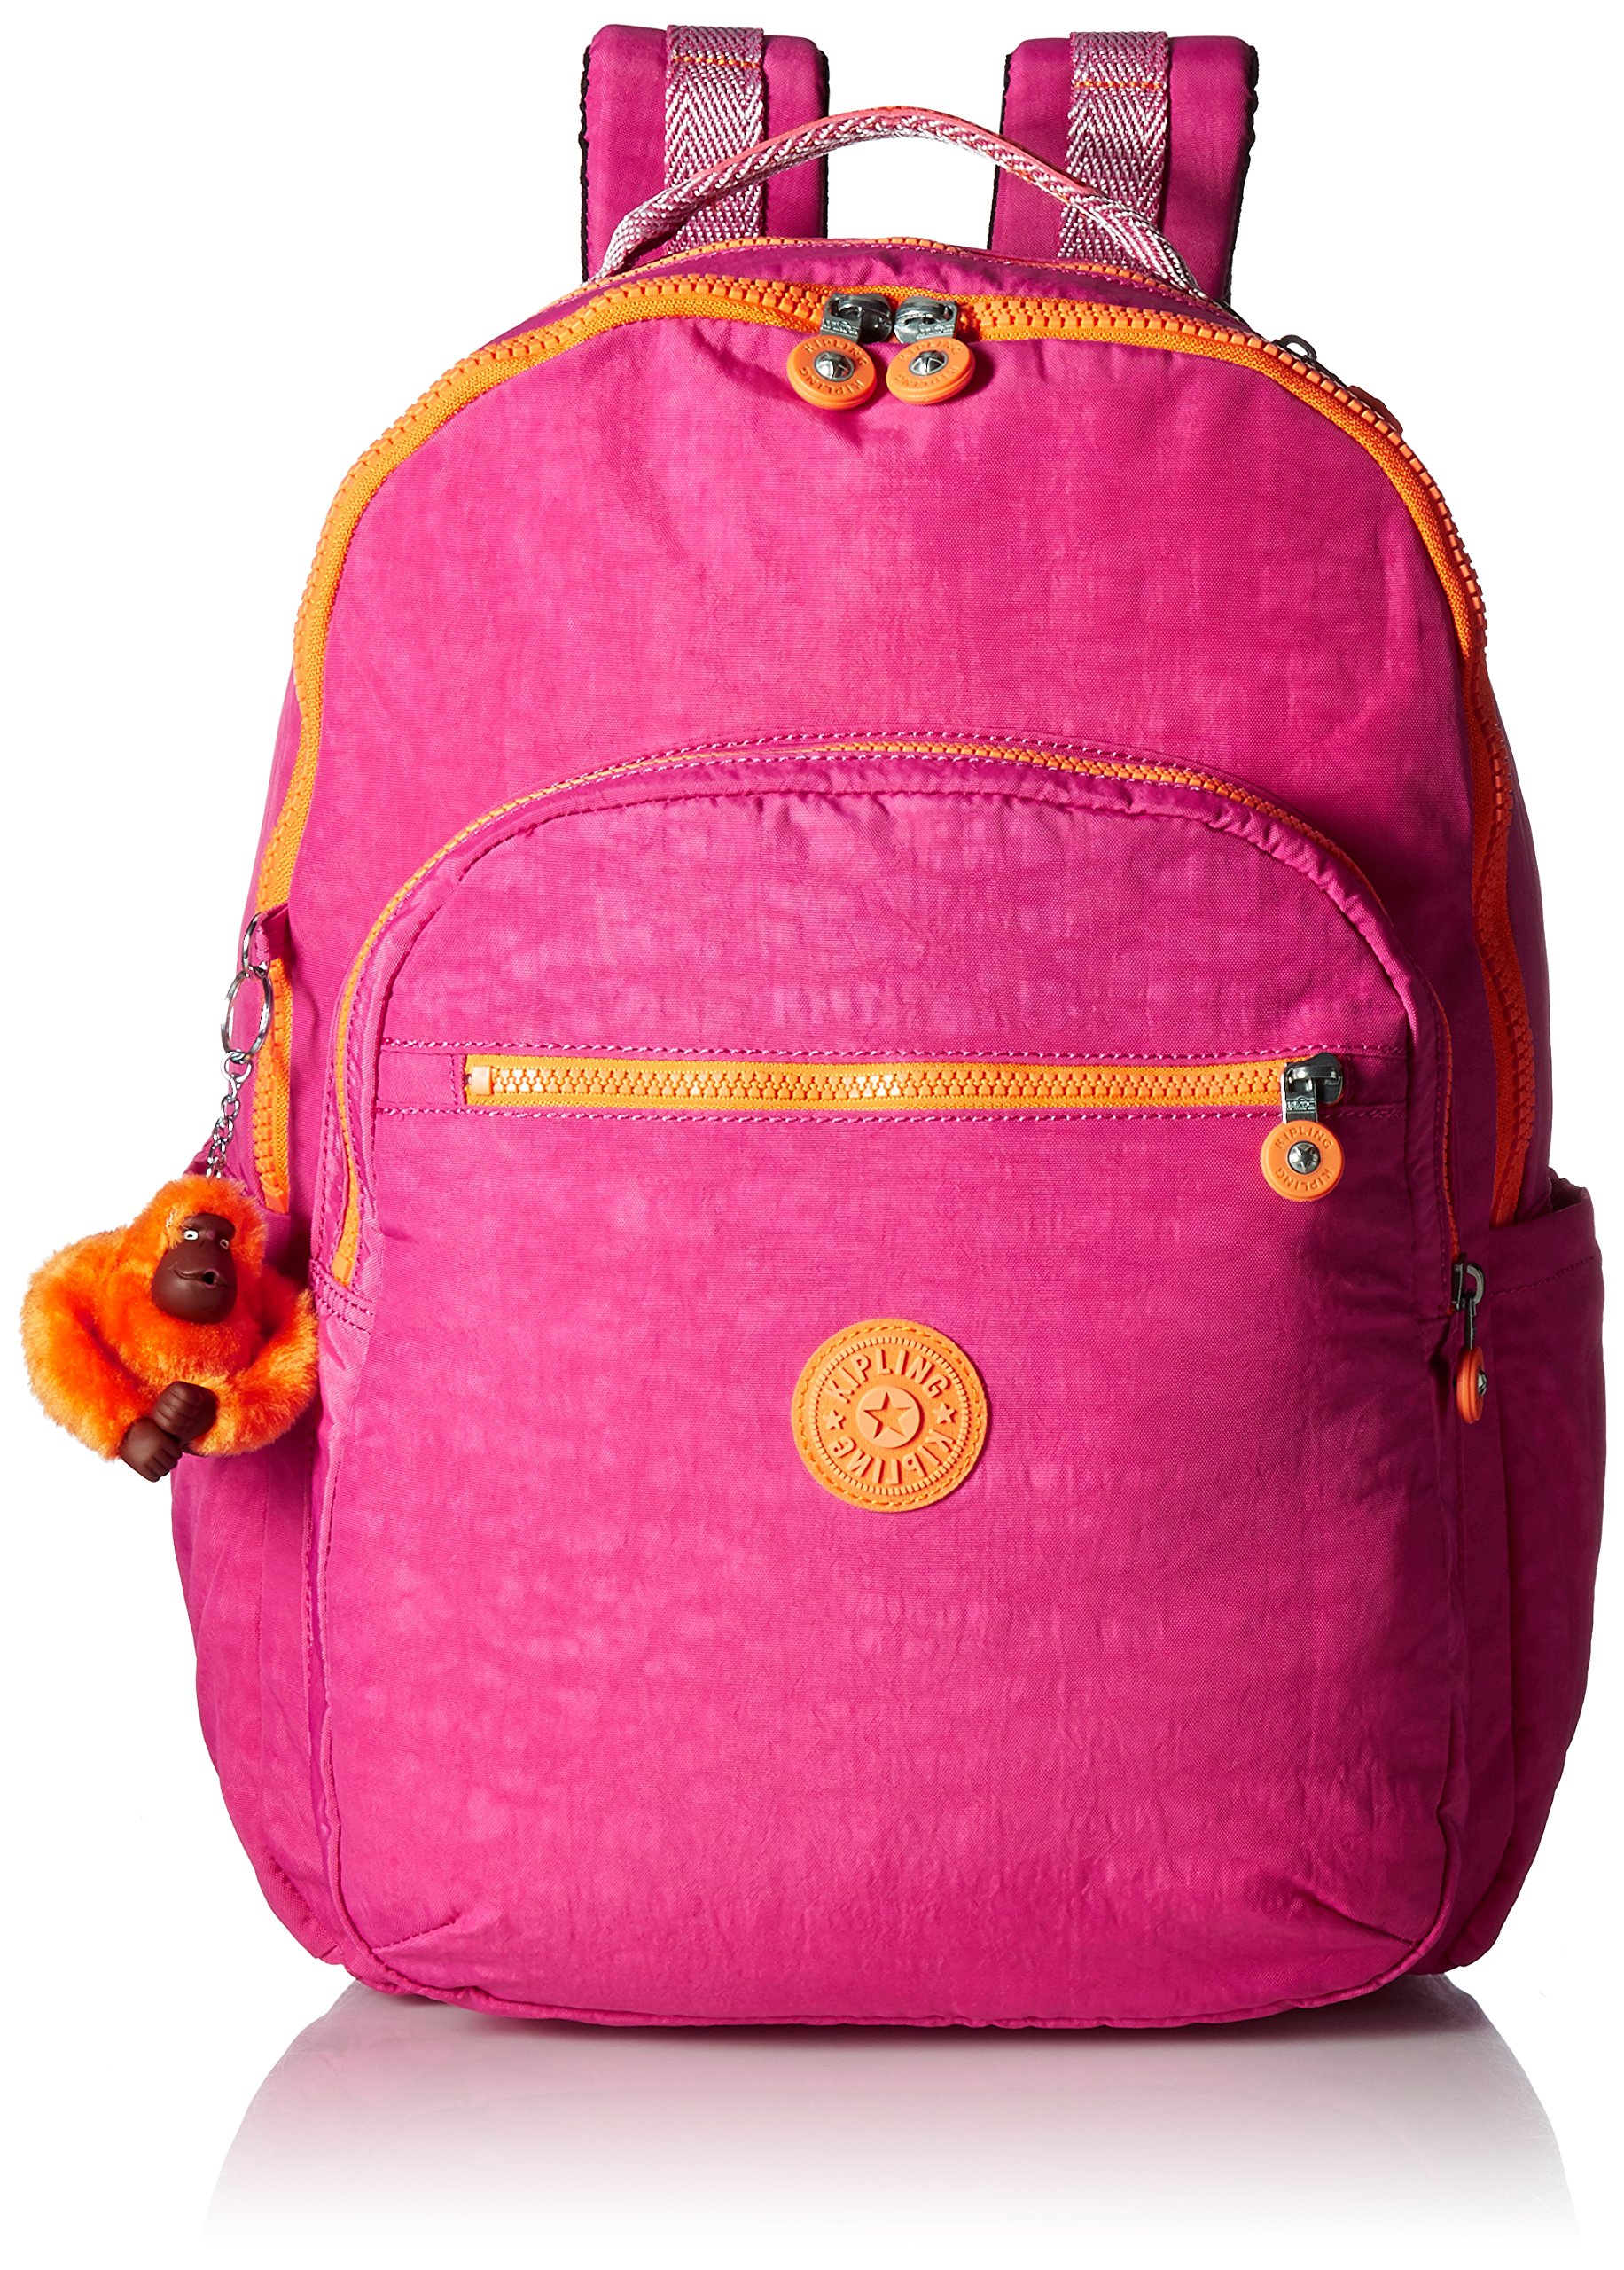 Seoul Extra Large Backpack Backpack, Very Berry, One Size